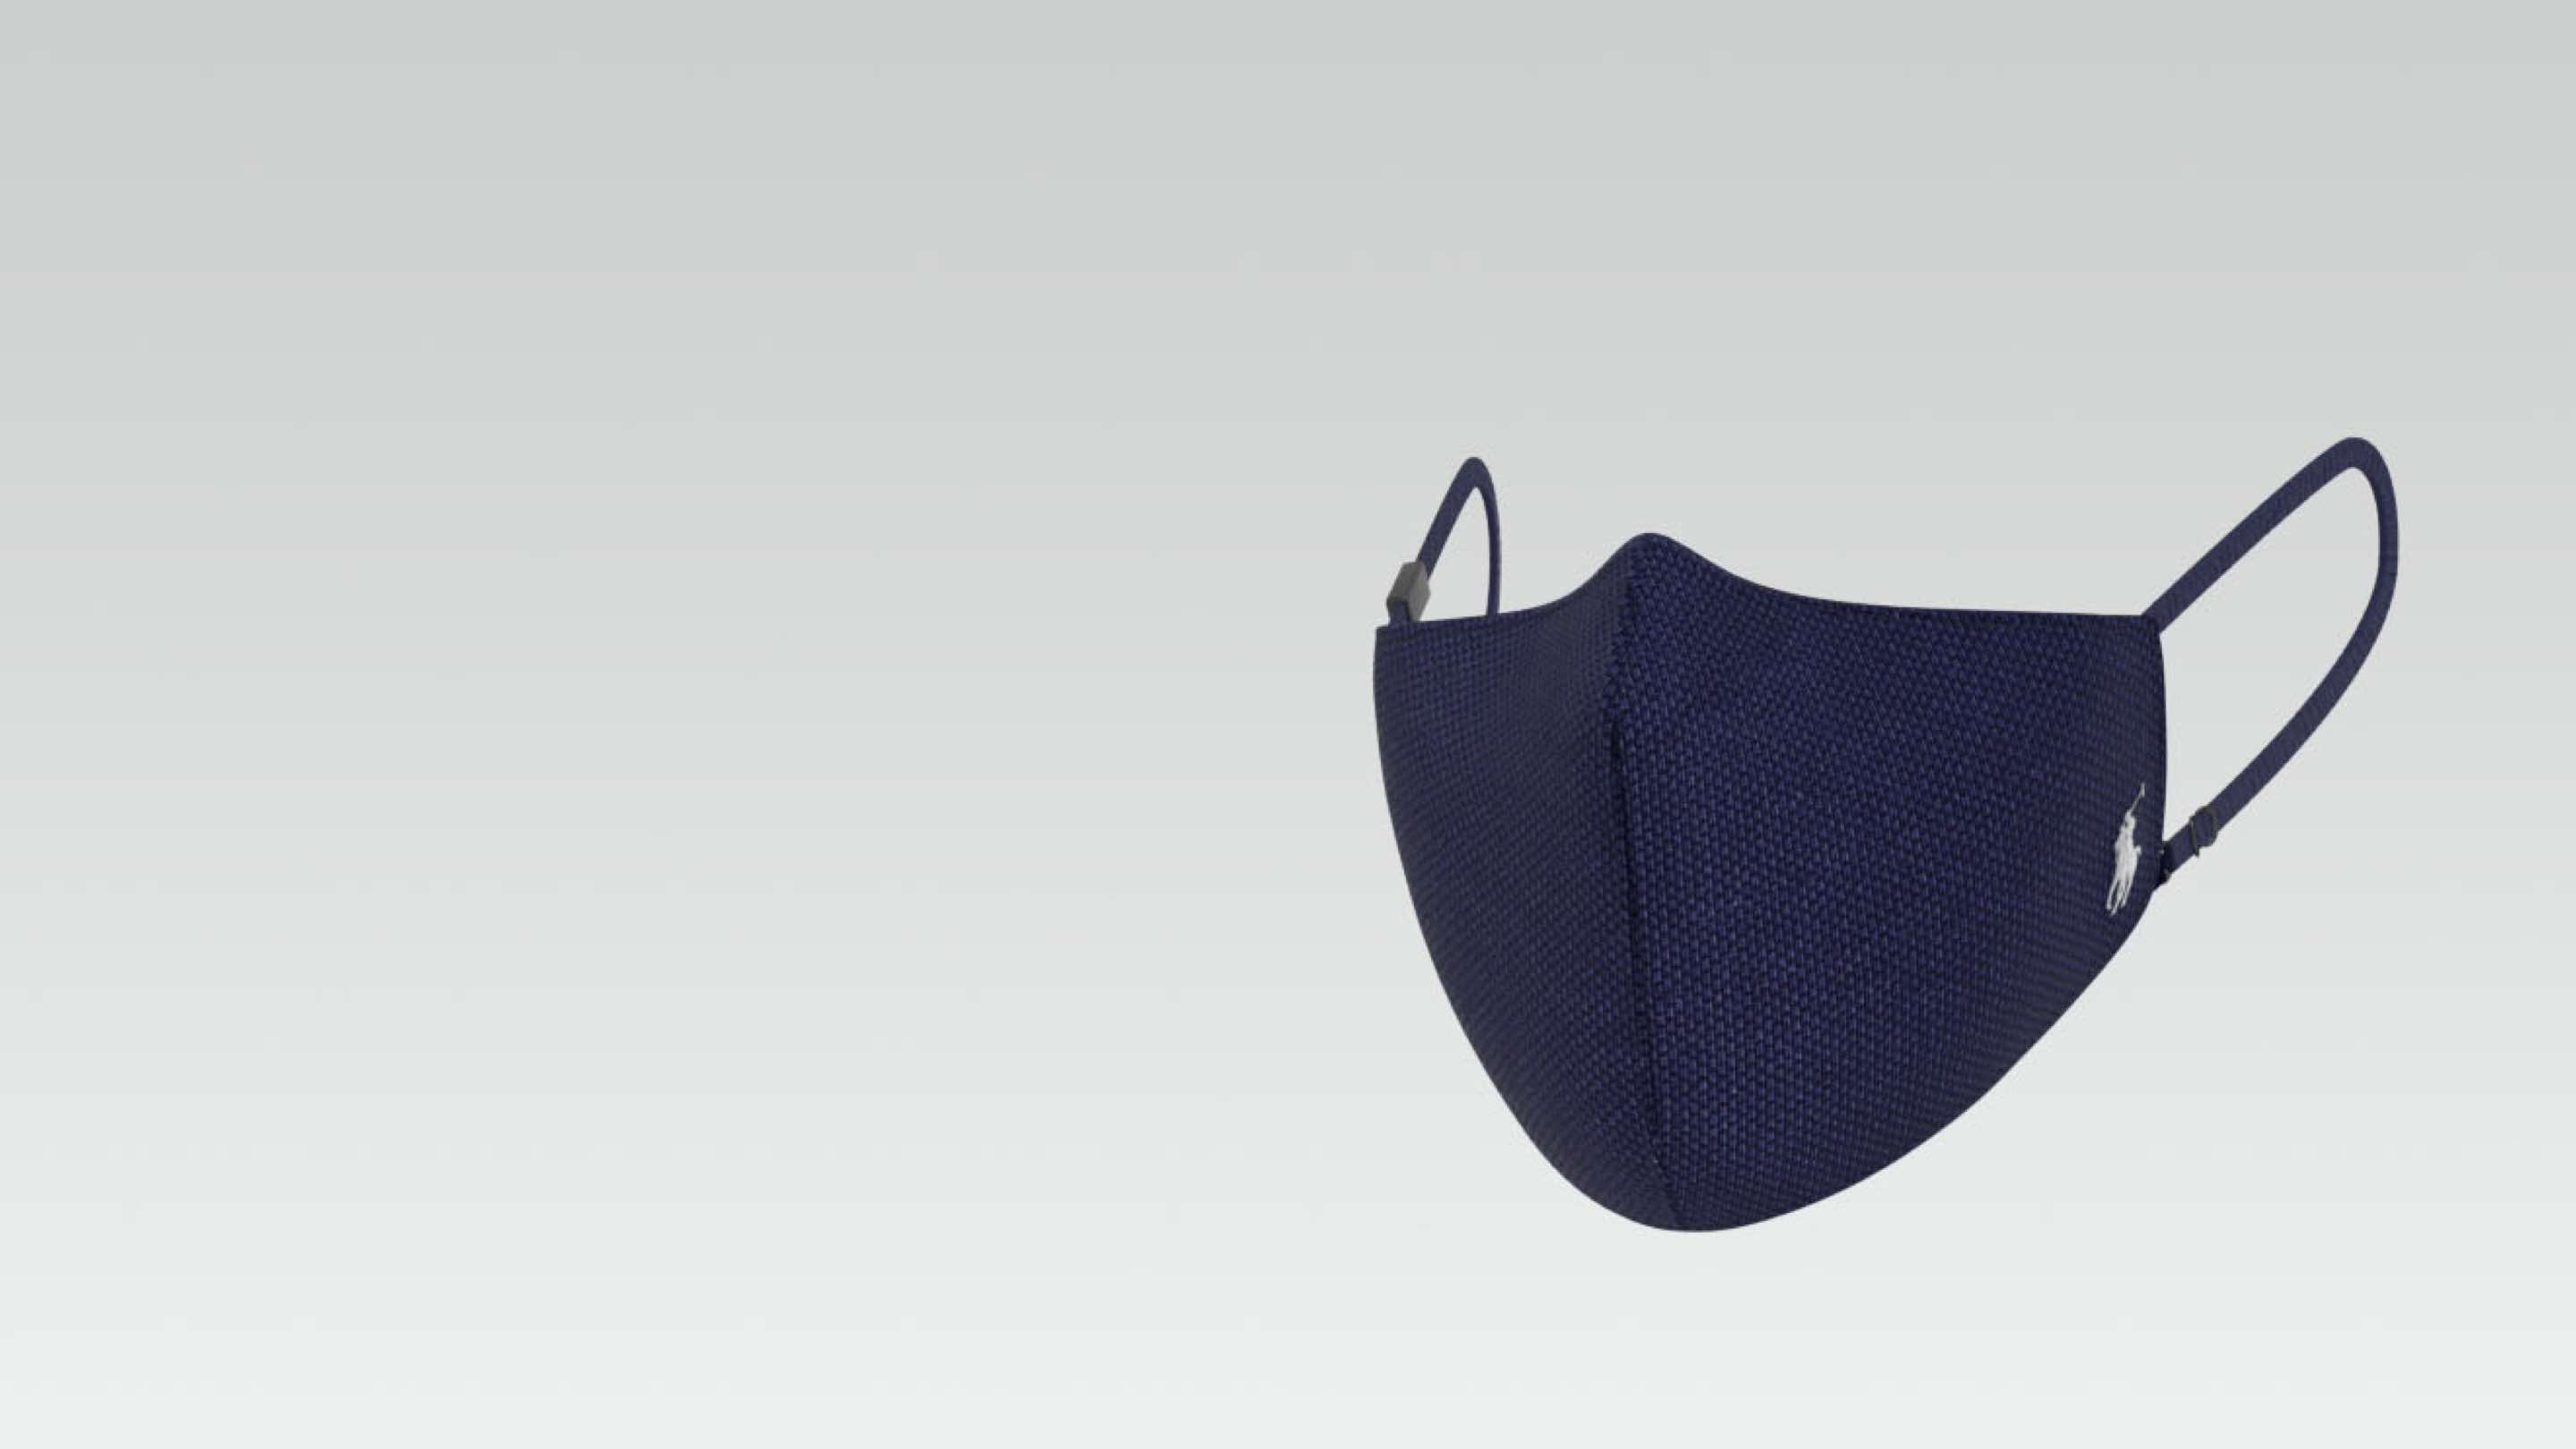 Black Polo high-filtration face mask.